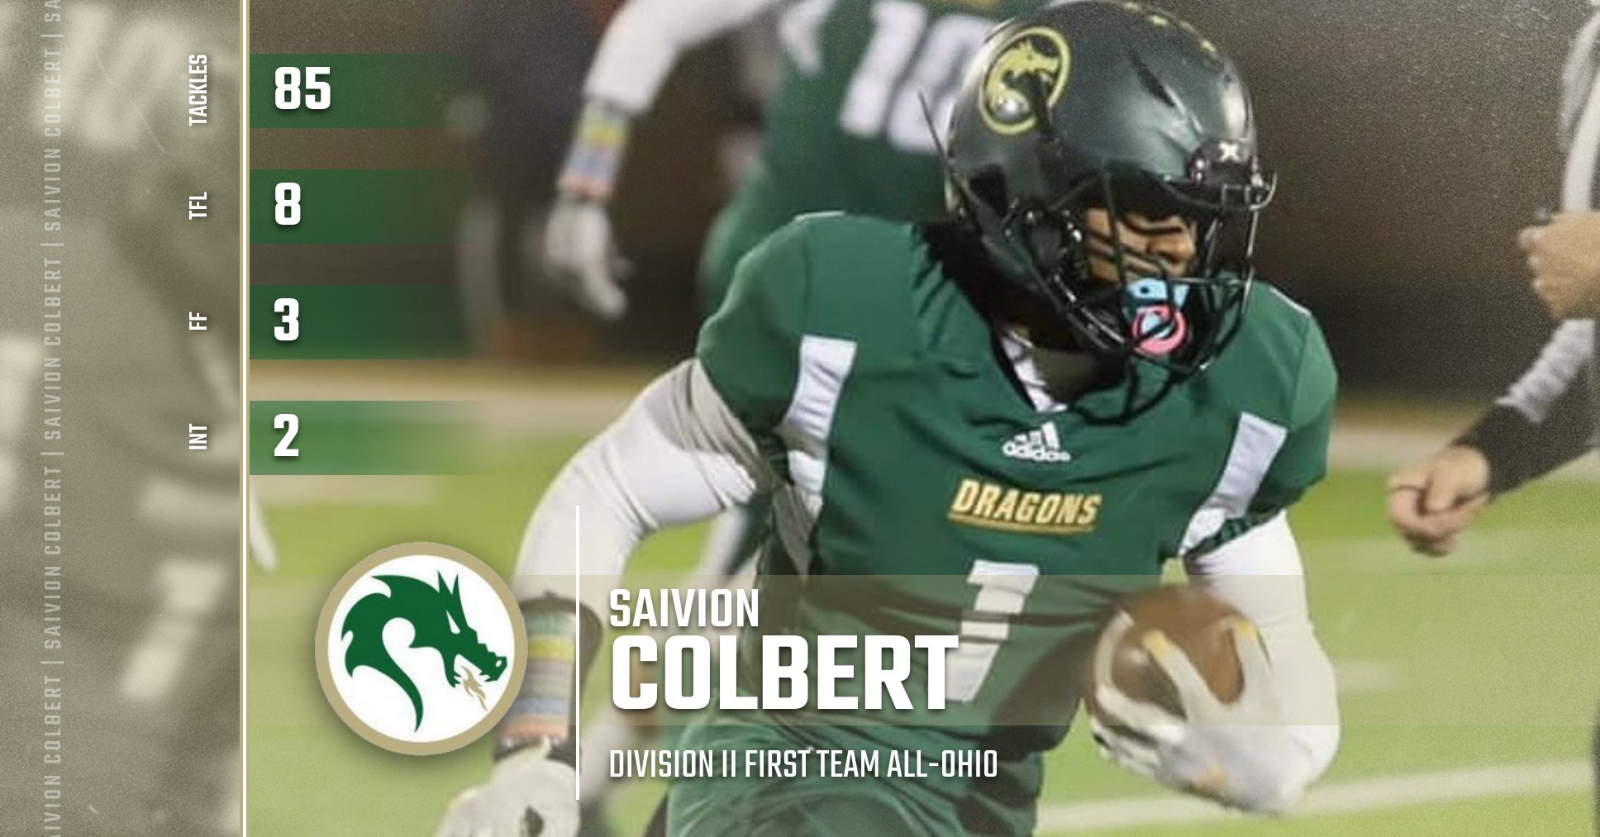 Colbert Named First-Ever First Team All-Ohio